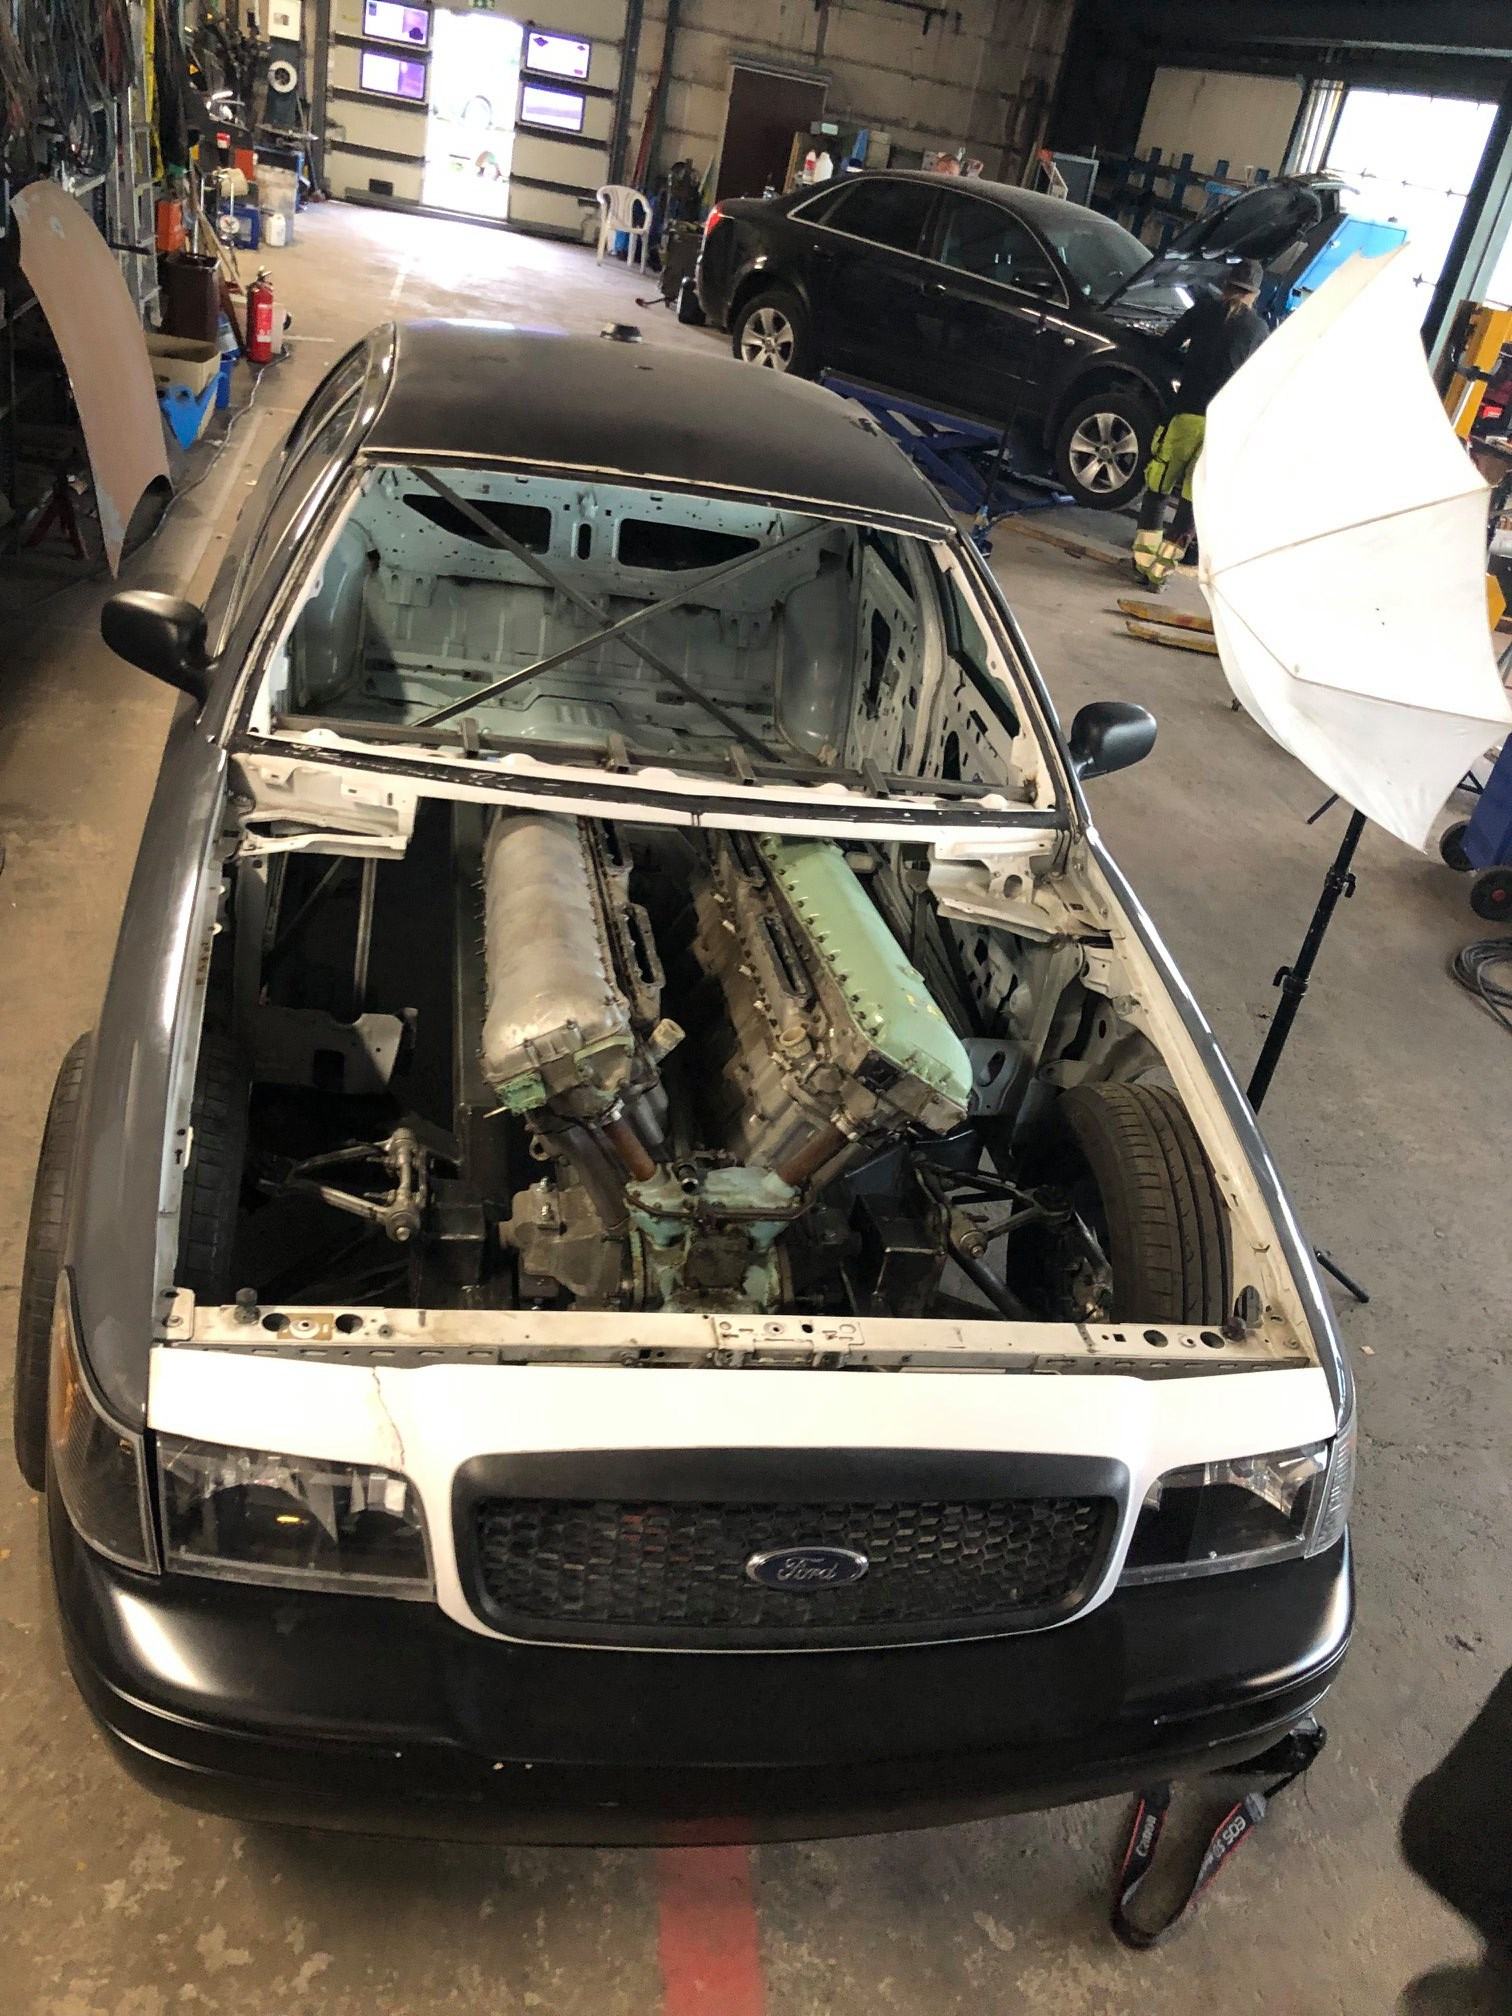 Crown Victoria with a Twin-Turbo 27.0 L Meteor V12